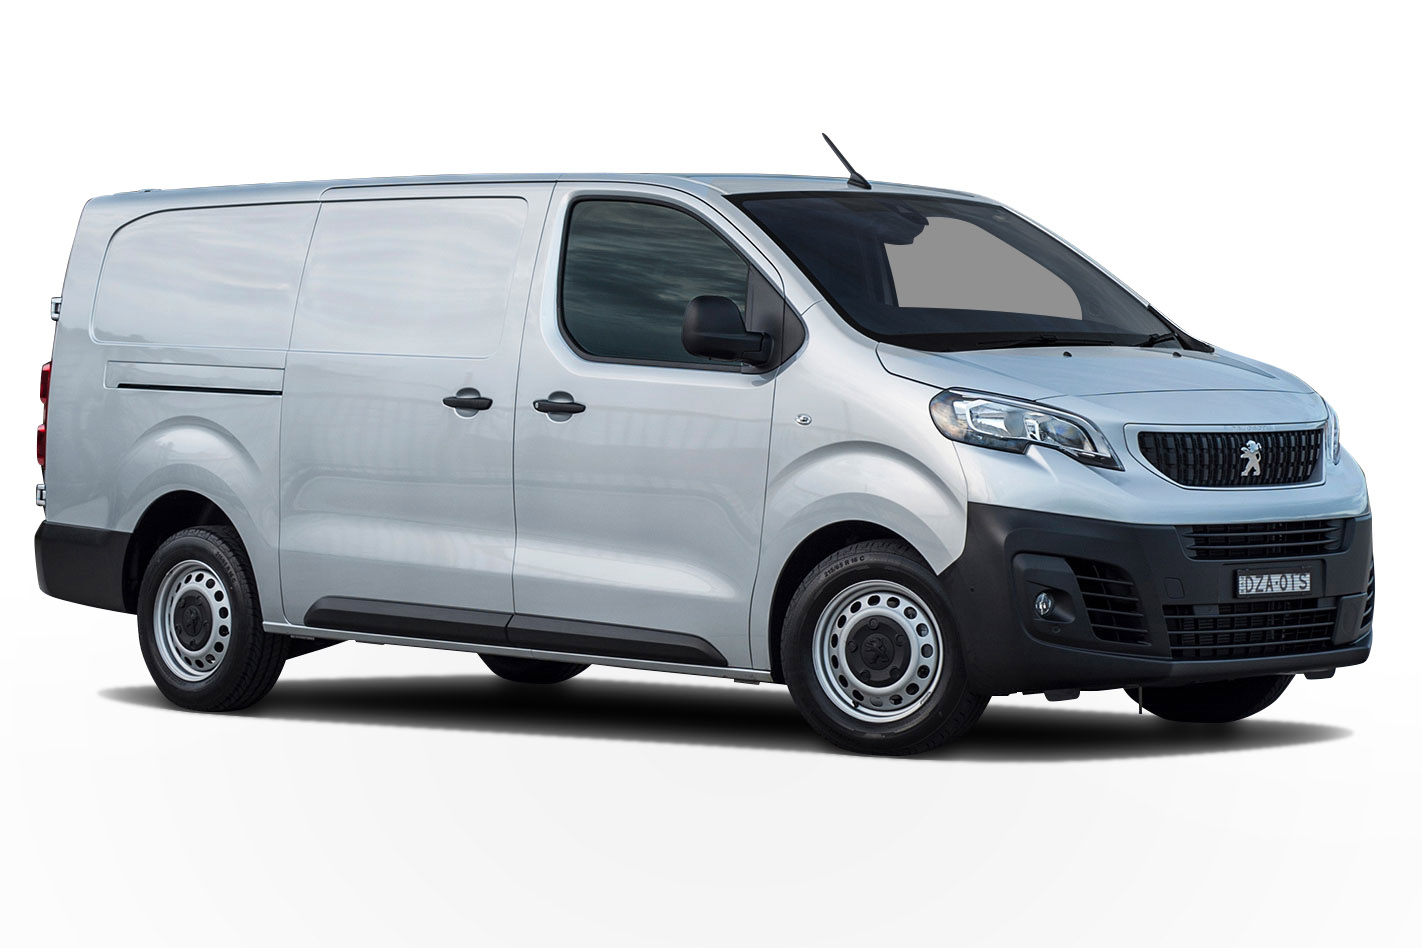 2019 Peugeot Expert 115 Hdi Standard 1 6l 4cyl Diesel Turbocharged Manual Van